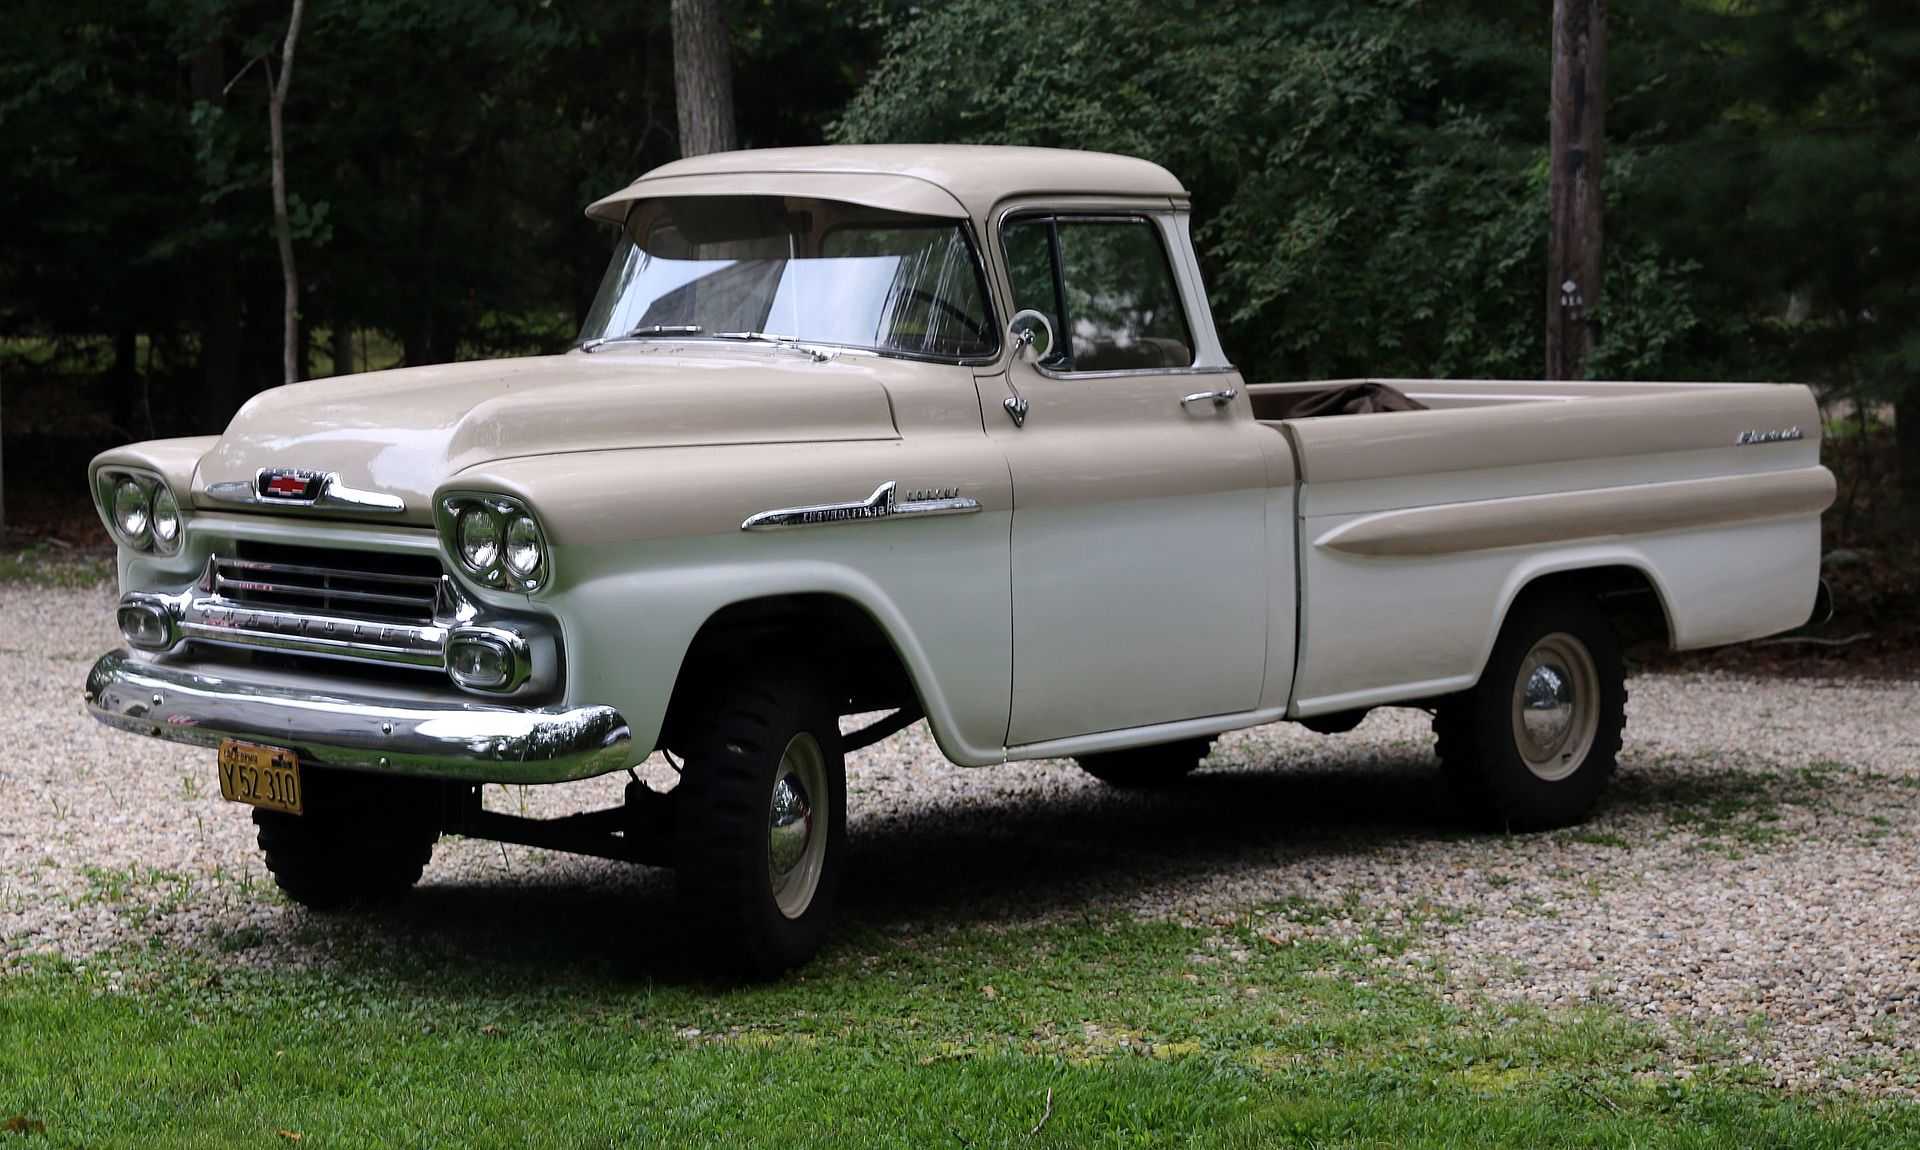 Ford Truck Wiring Diagram Furthermore 1950 Ford Truck Wiring Diagram